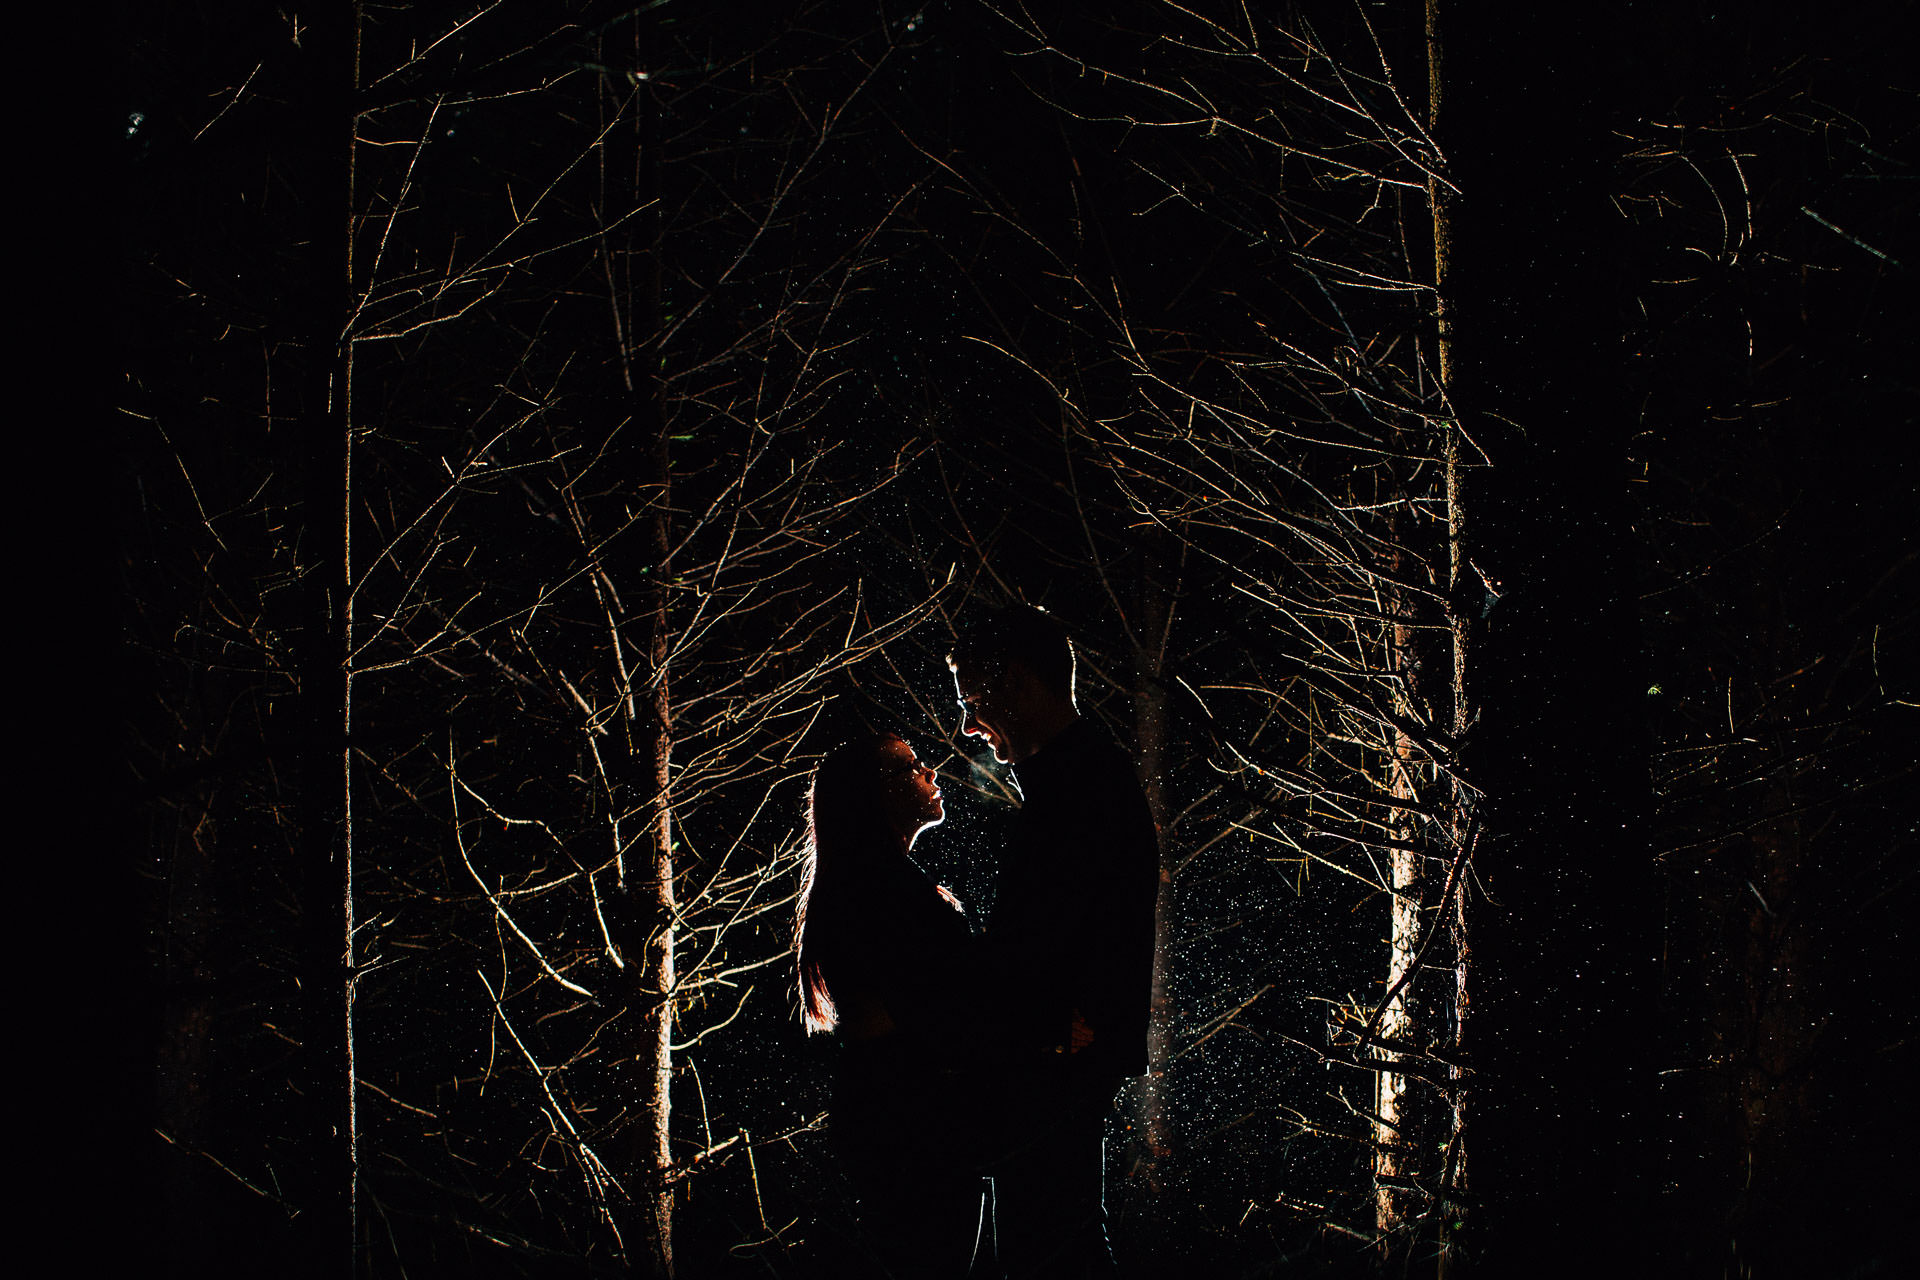 Whinlatter Pre Wedding Shoot Lake District - N&P - backlit flash OCF shot of couple in the trees